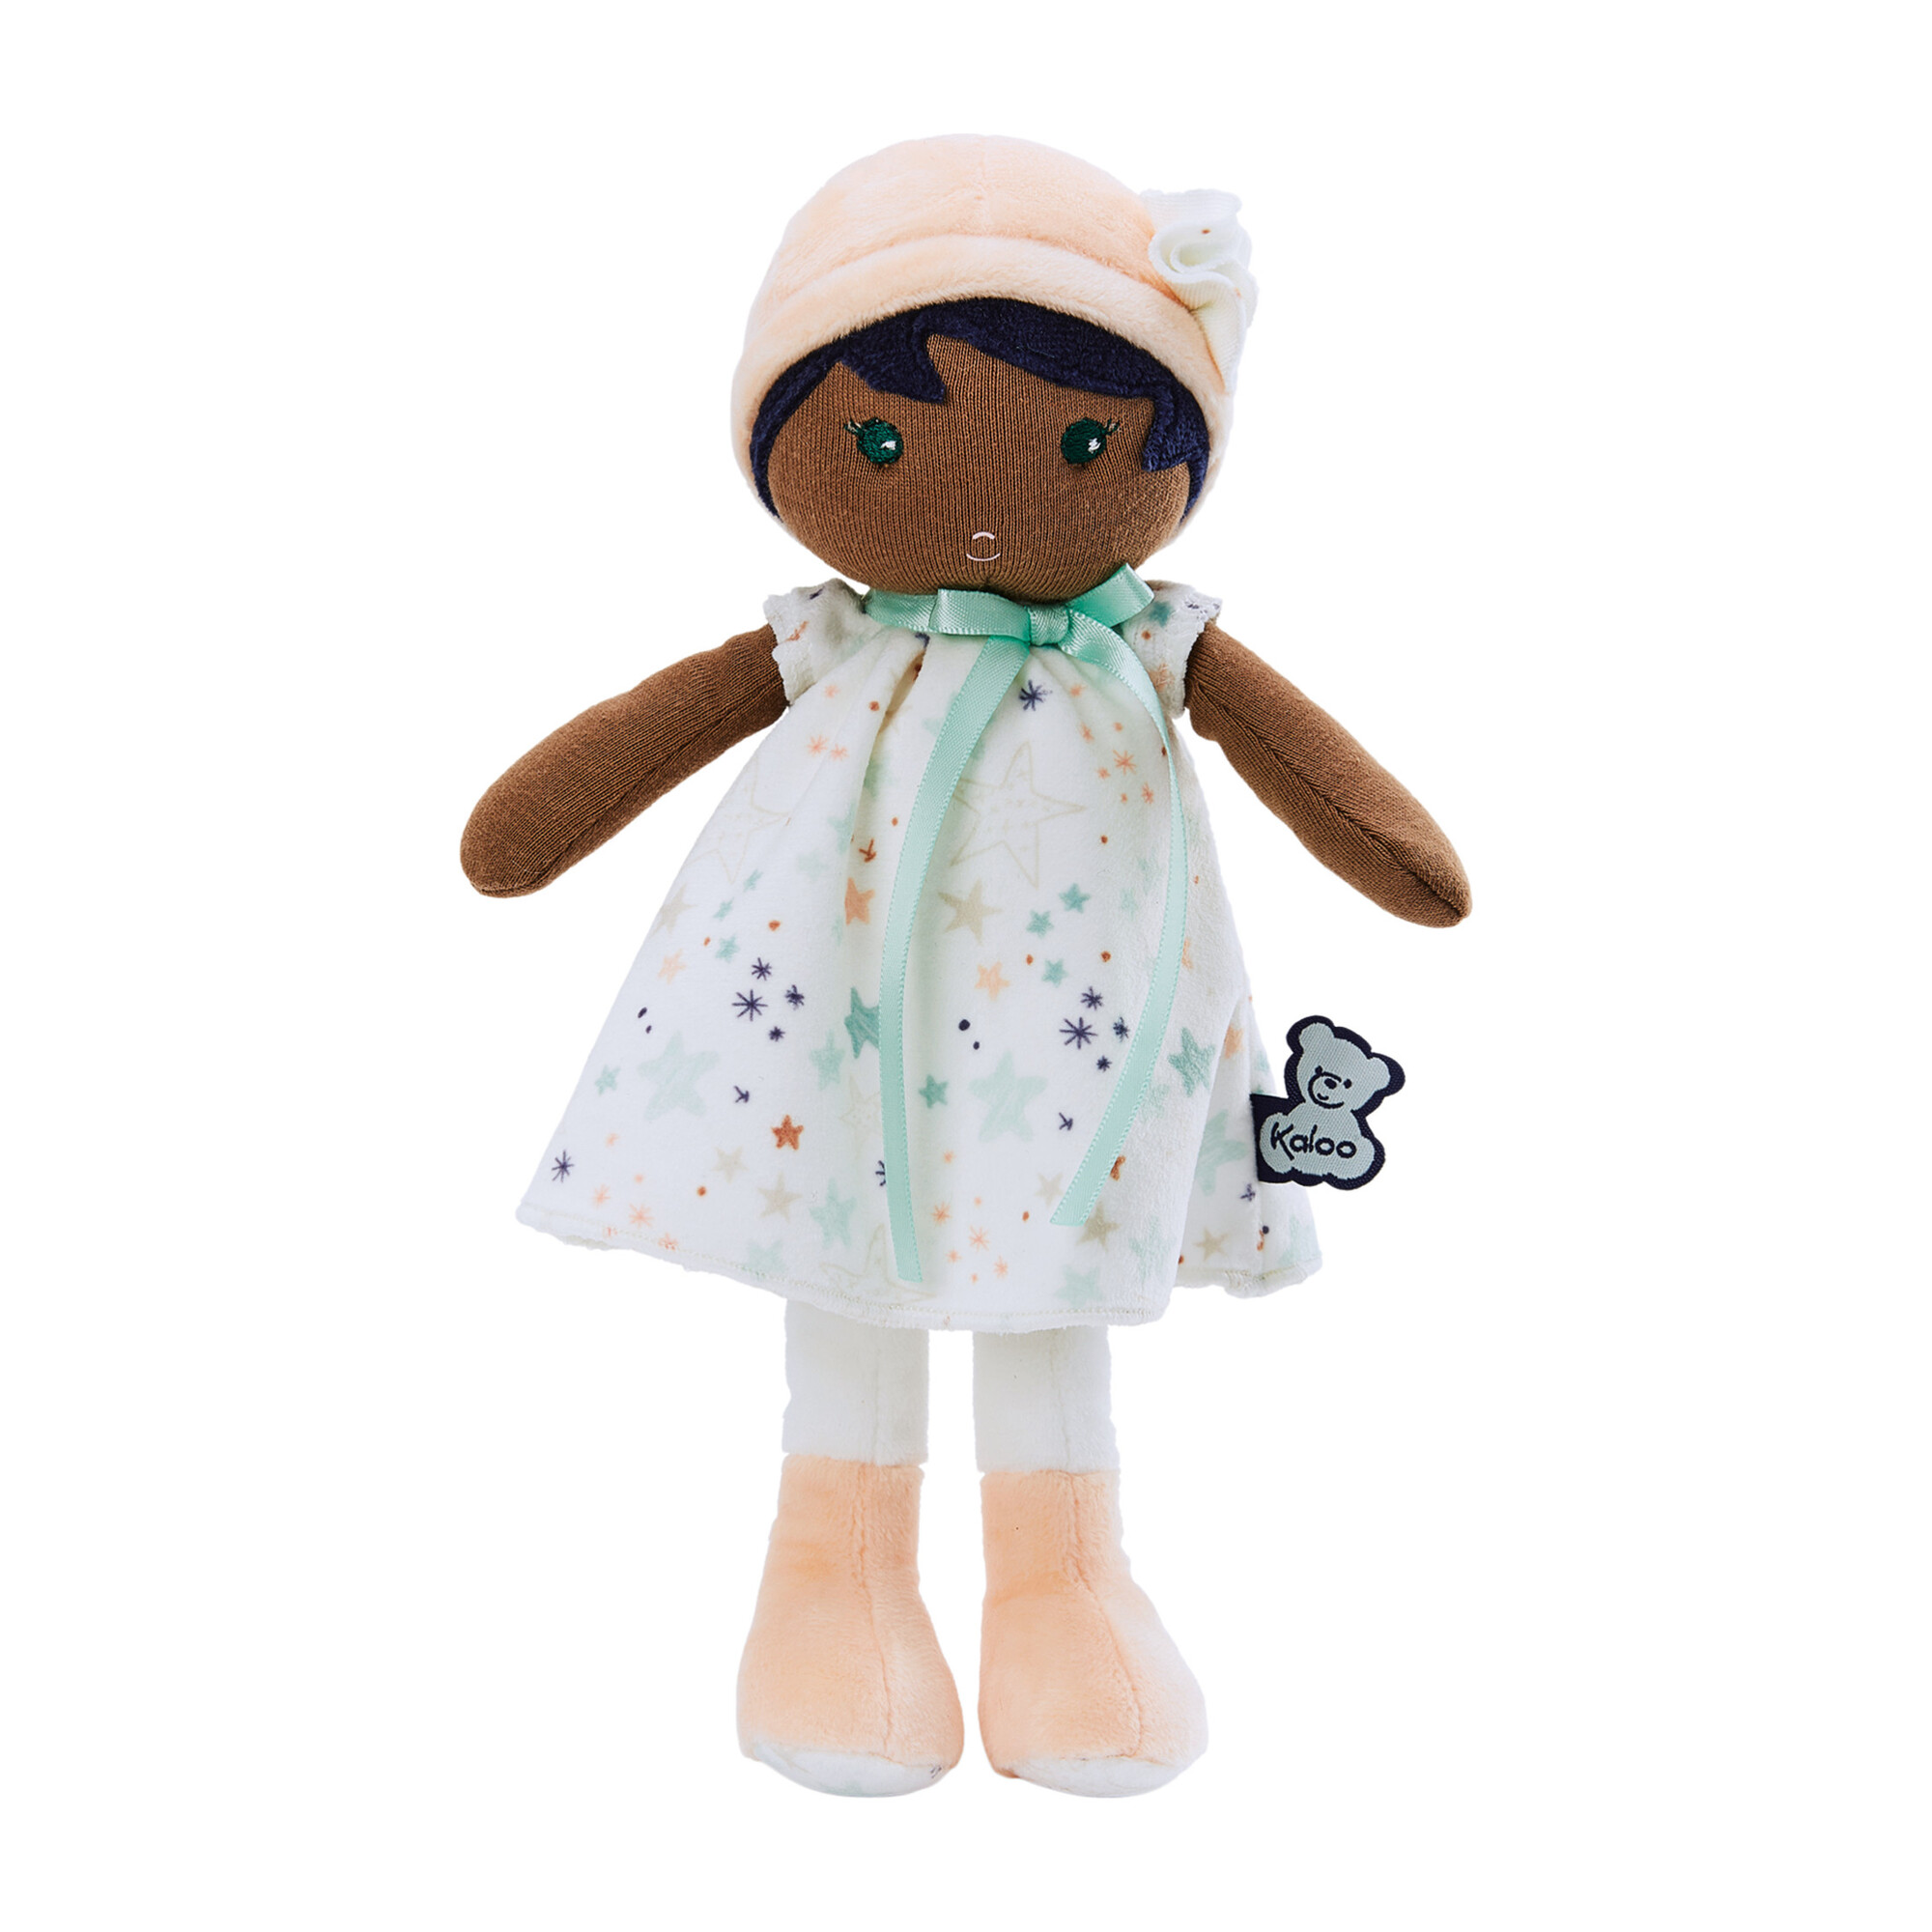 Tendresse Manon K Doll